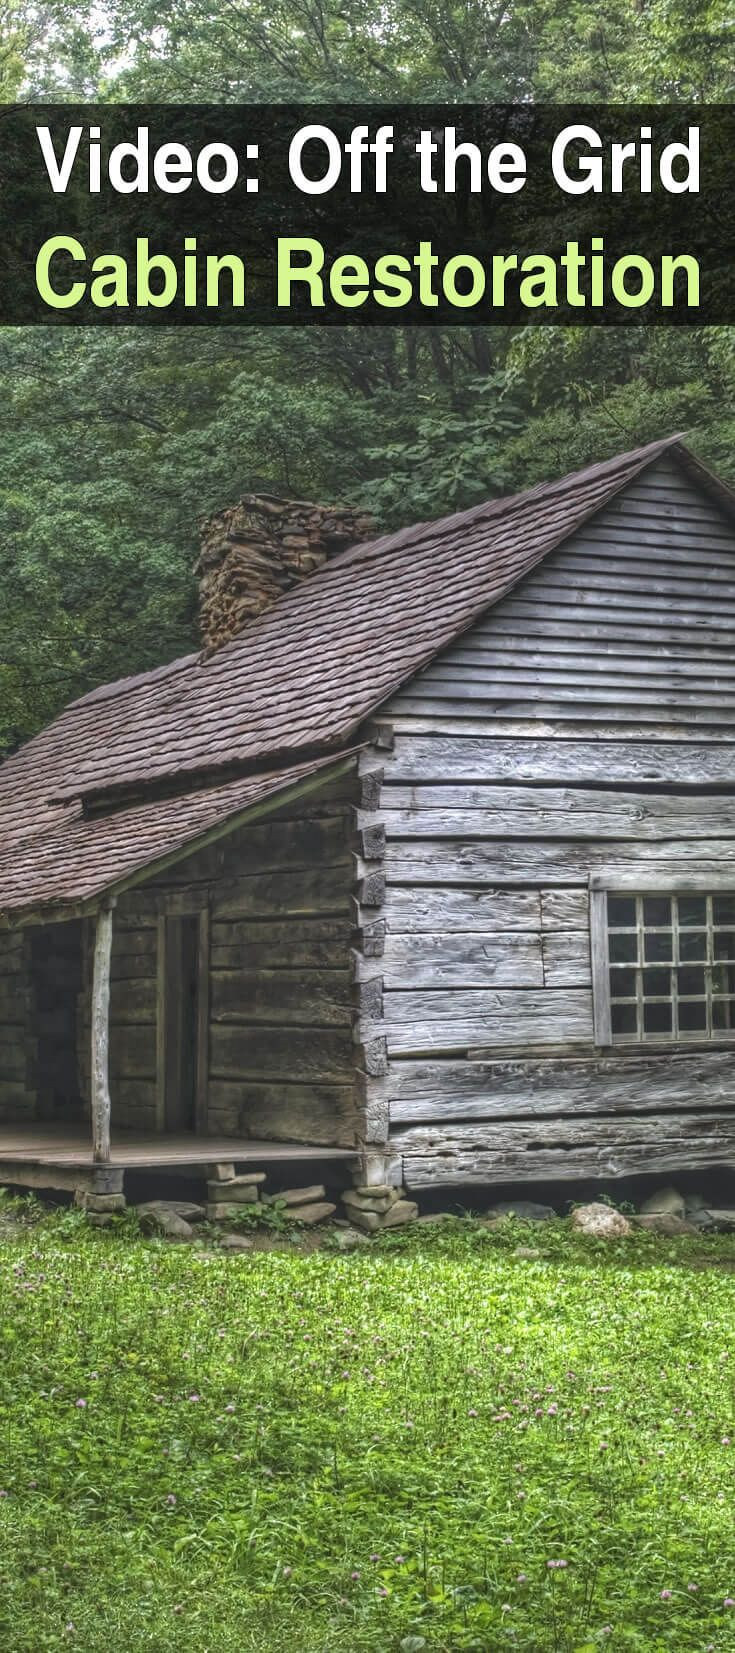 Whether you're looking for a homestead or a bug out location, this series will give you a great idea of the kind of work involved restoring an old cabin.